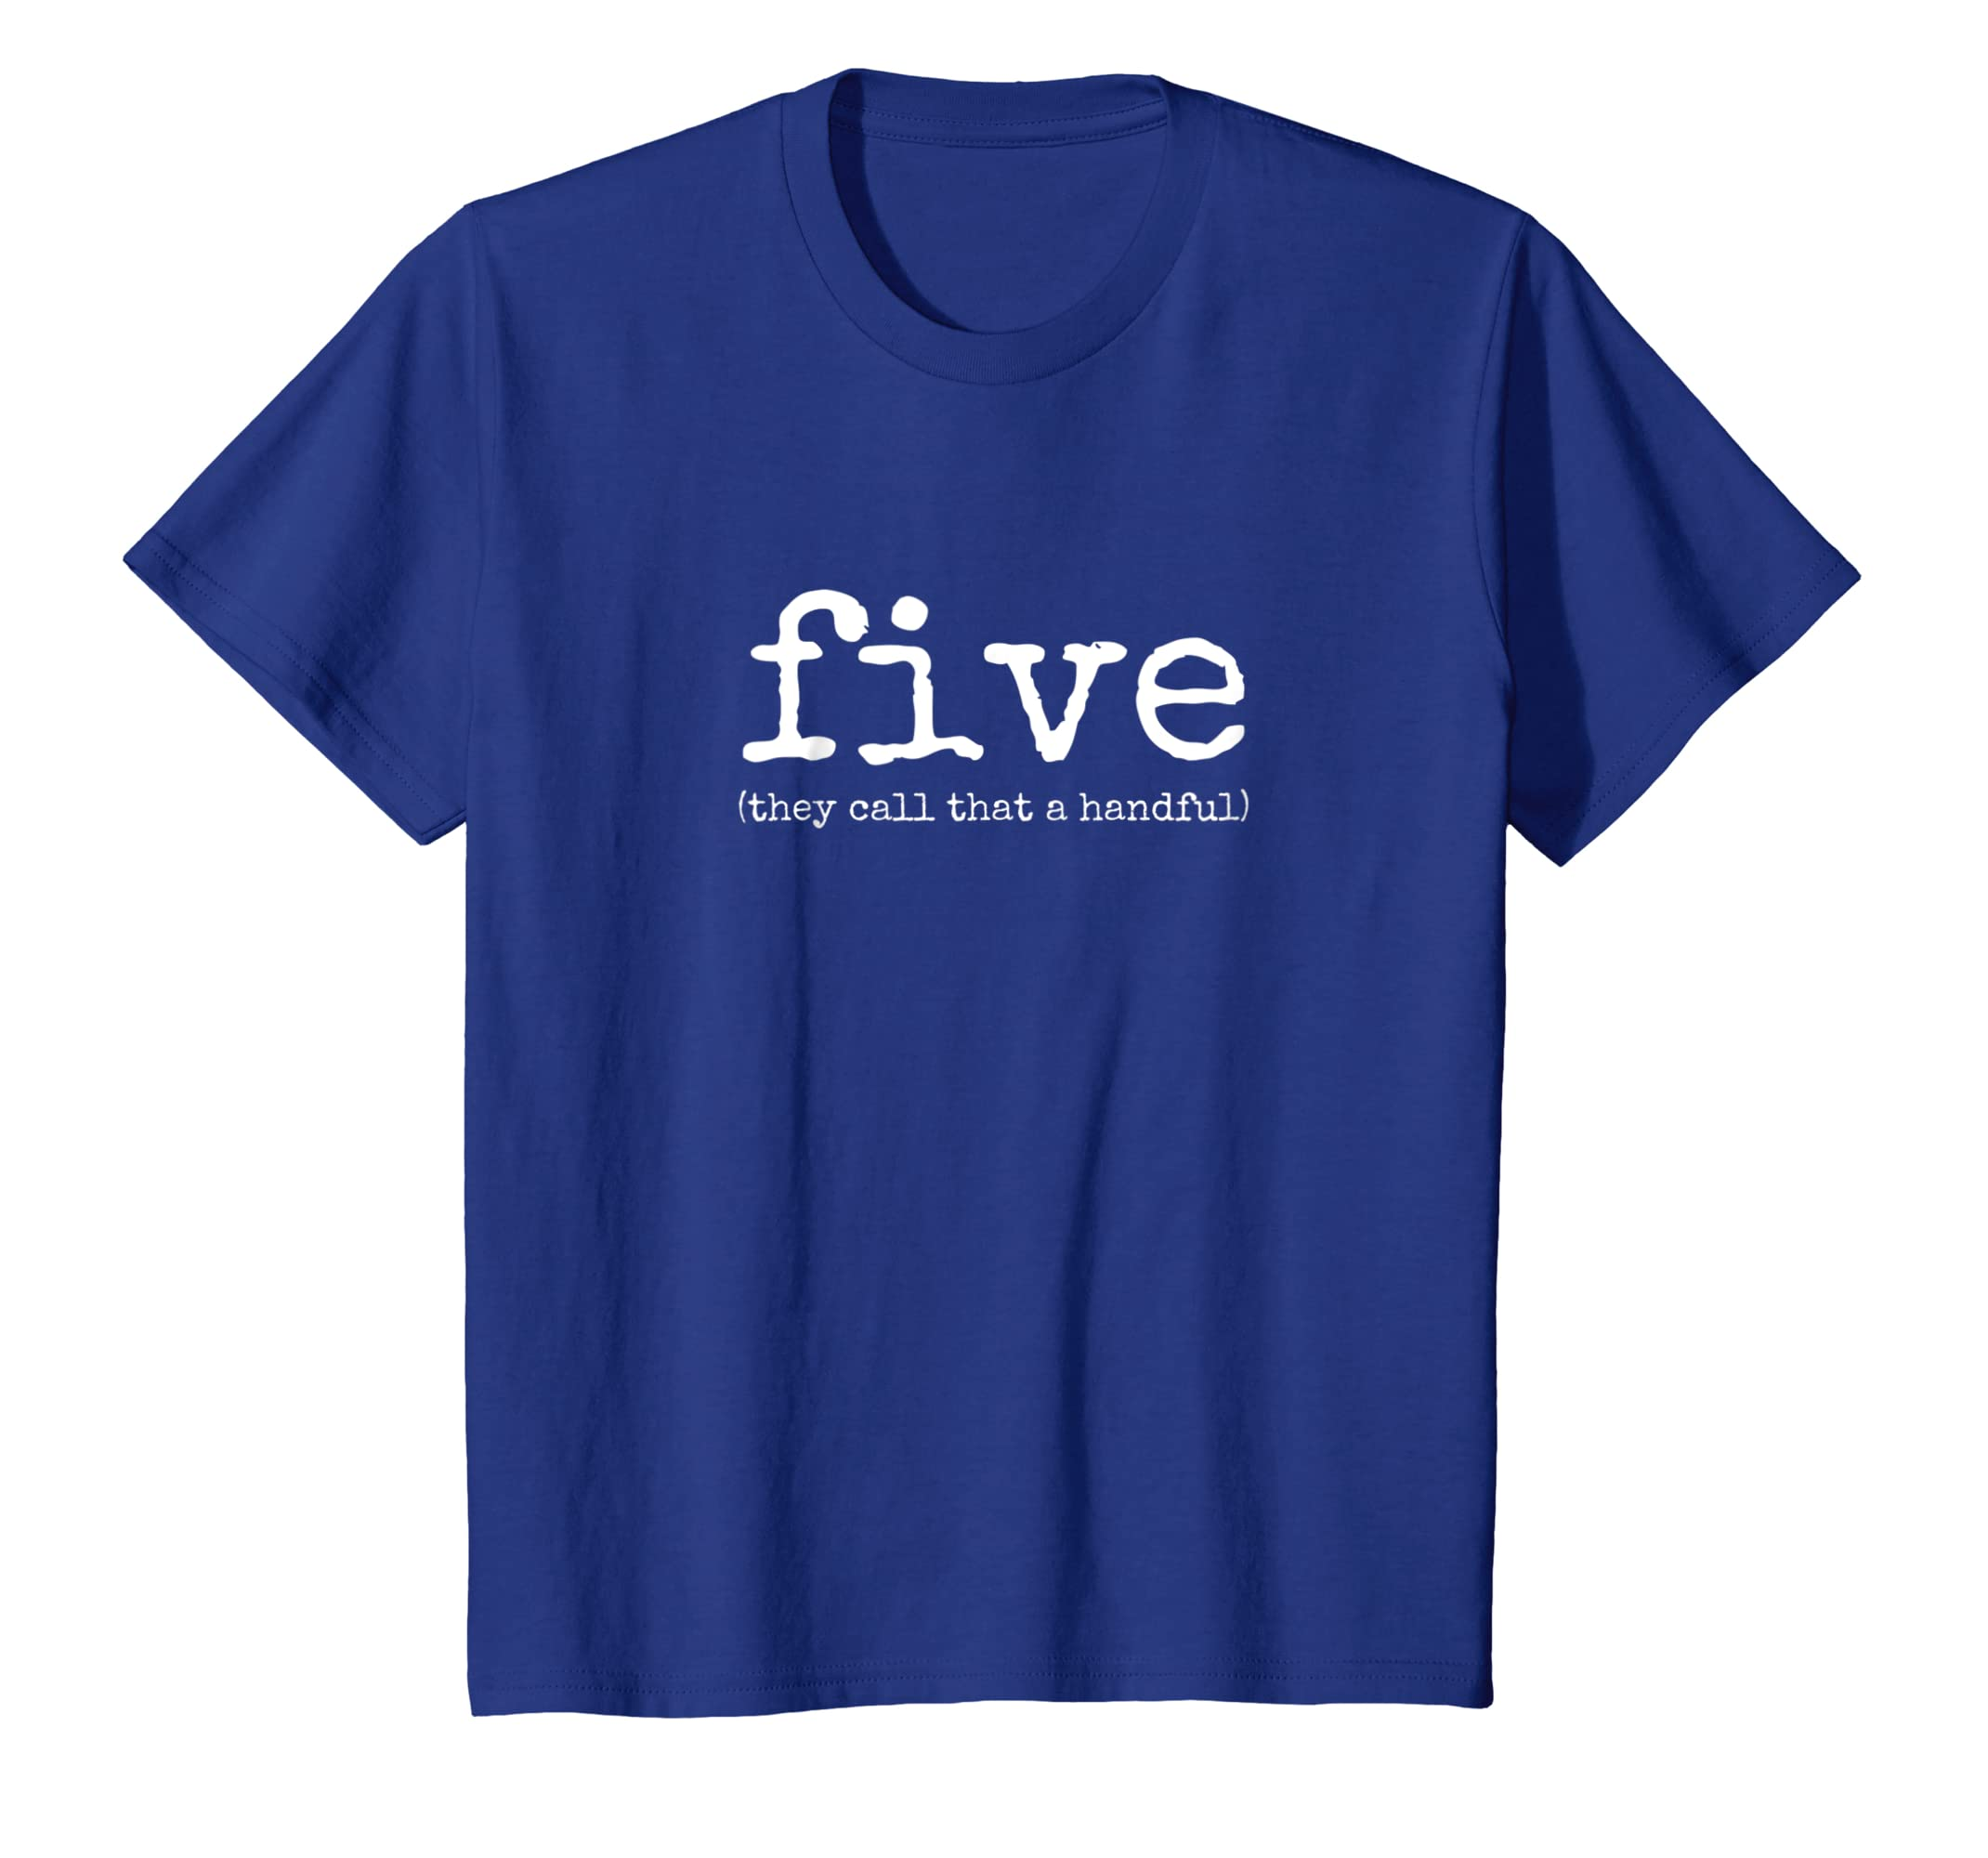 8166f46dff06 Amazon.com  Kids 5th Birthday Shirt for Boys - Gift for 5 Year Old Kids   Clothing